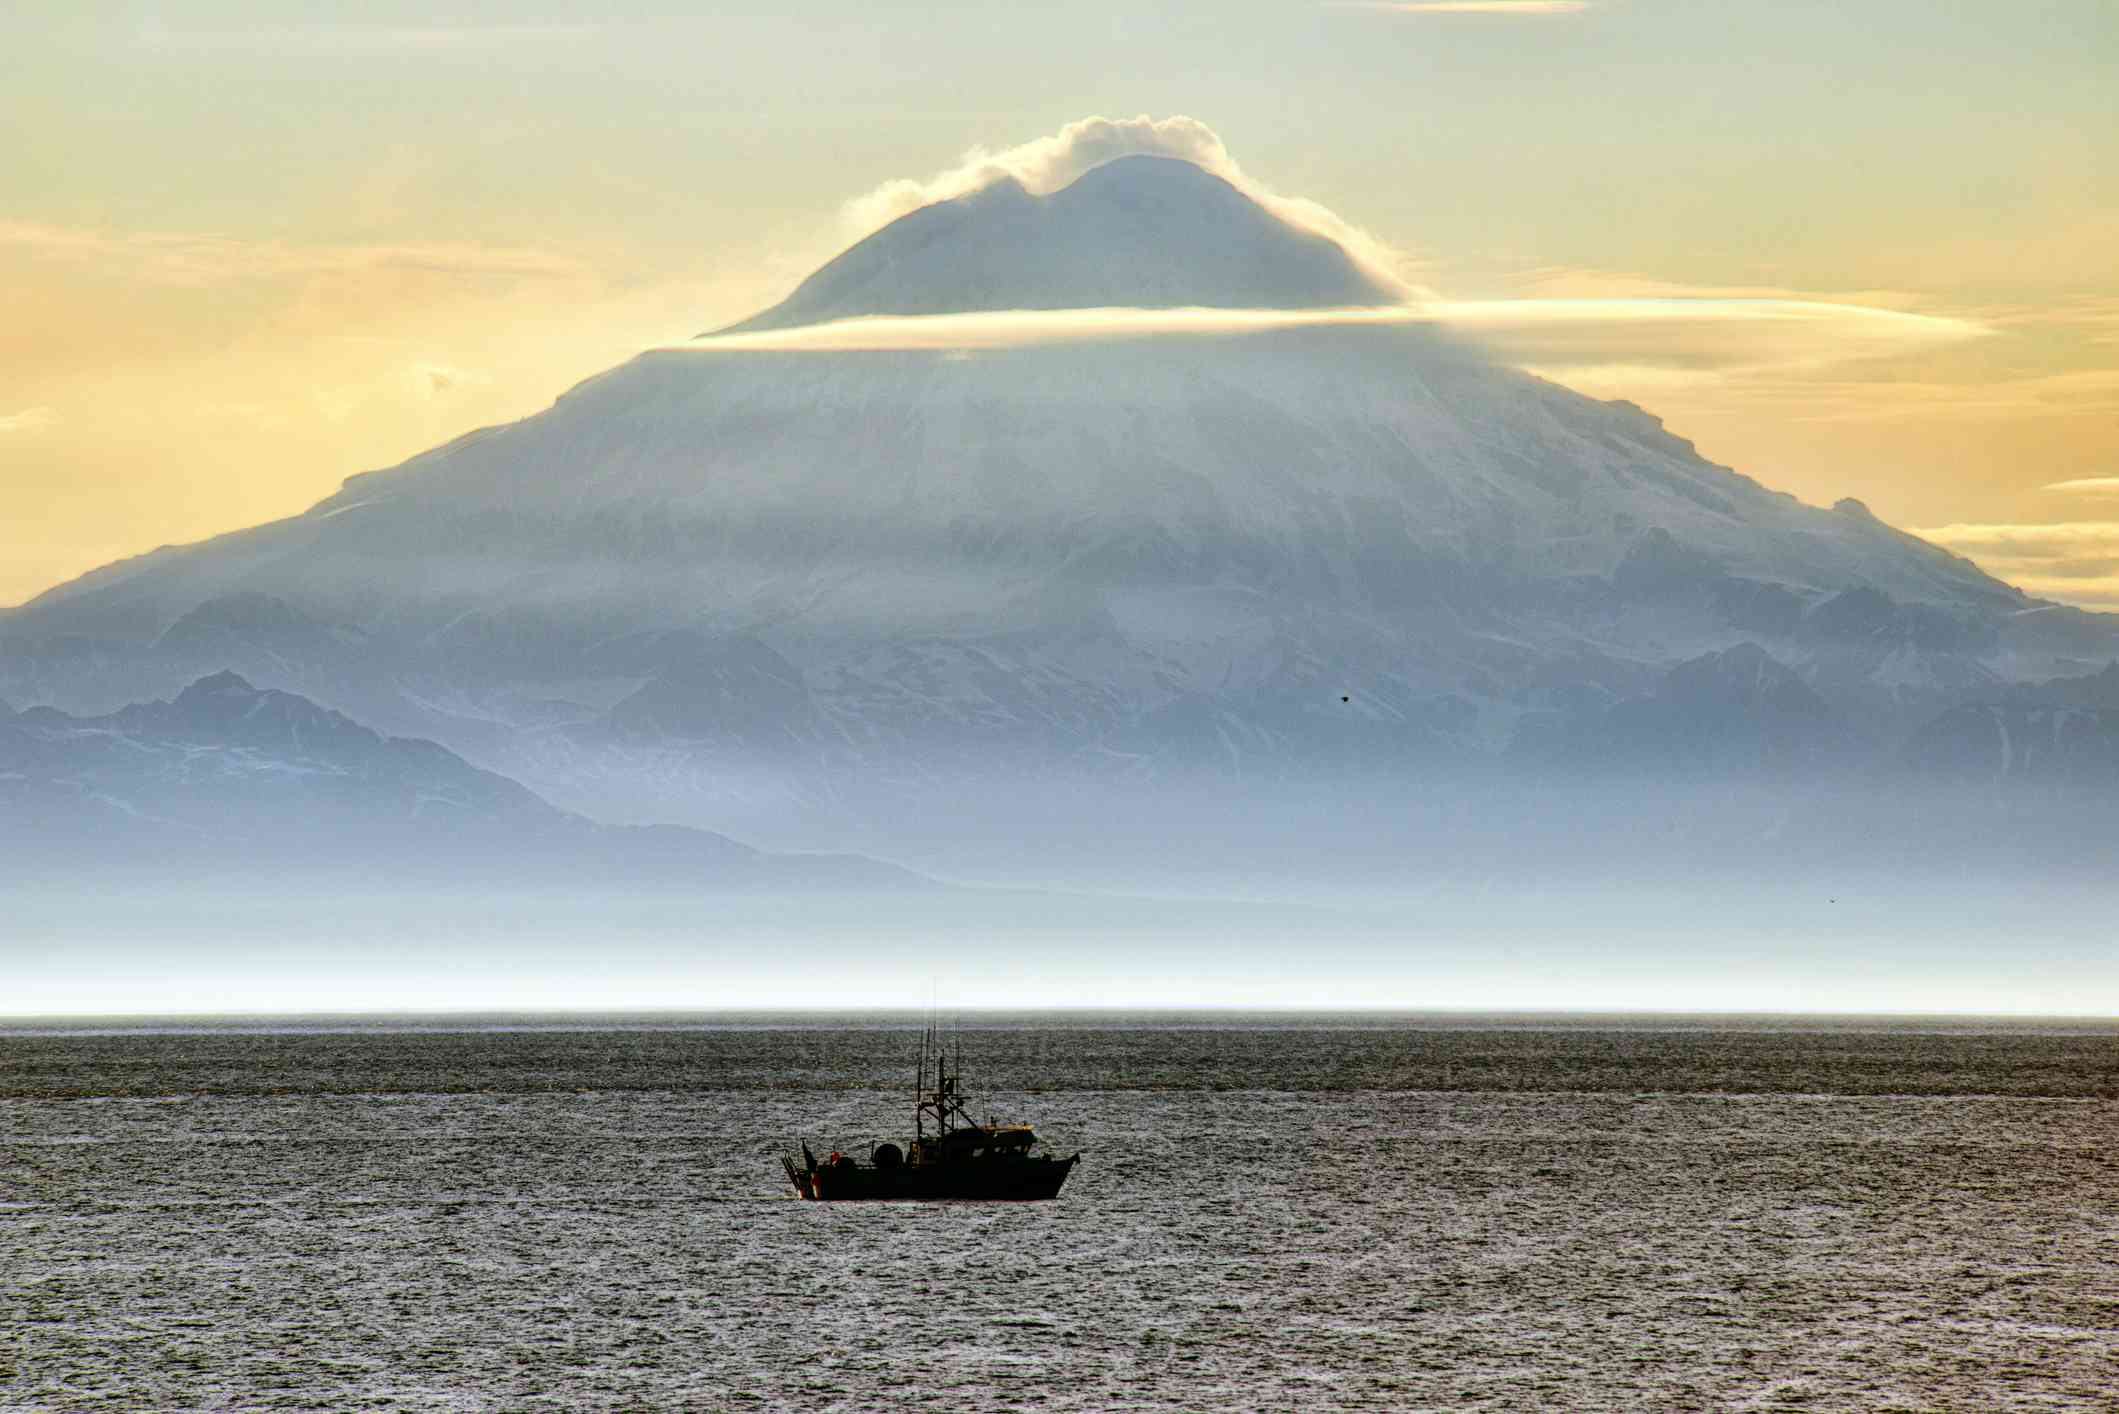 Fishing boat in water in front of Mount Redoubt